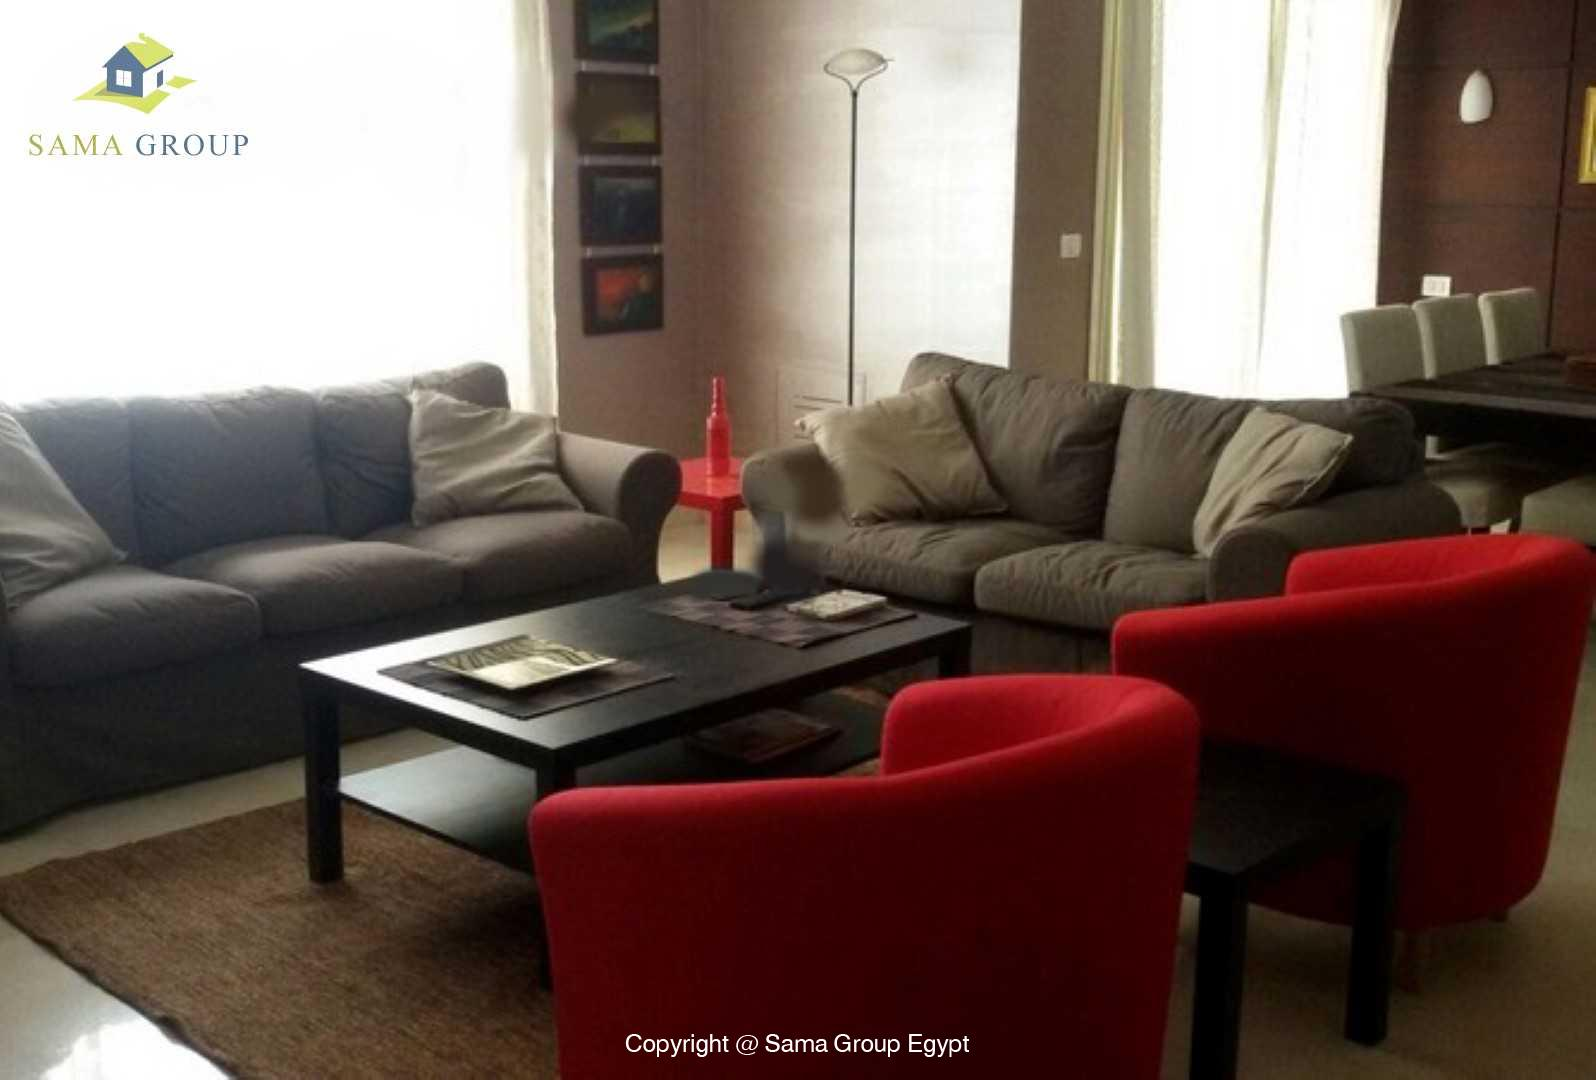 Apartment For Rent In Village Gate New Cairo,Modern Furnished,Apartment NO #2